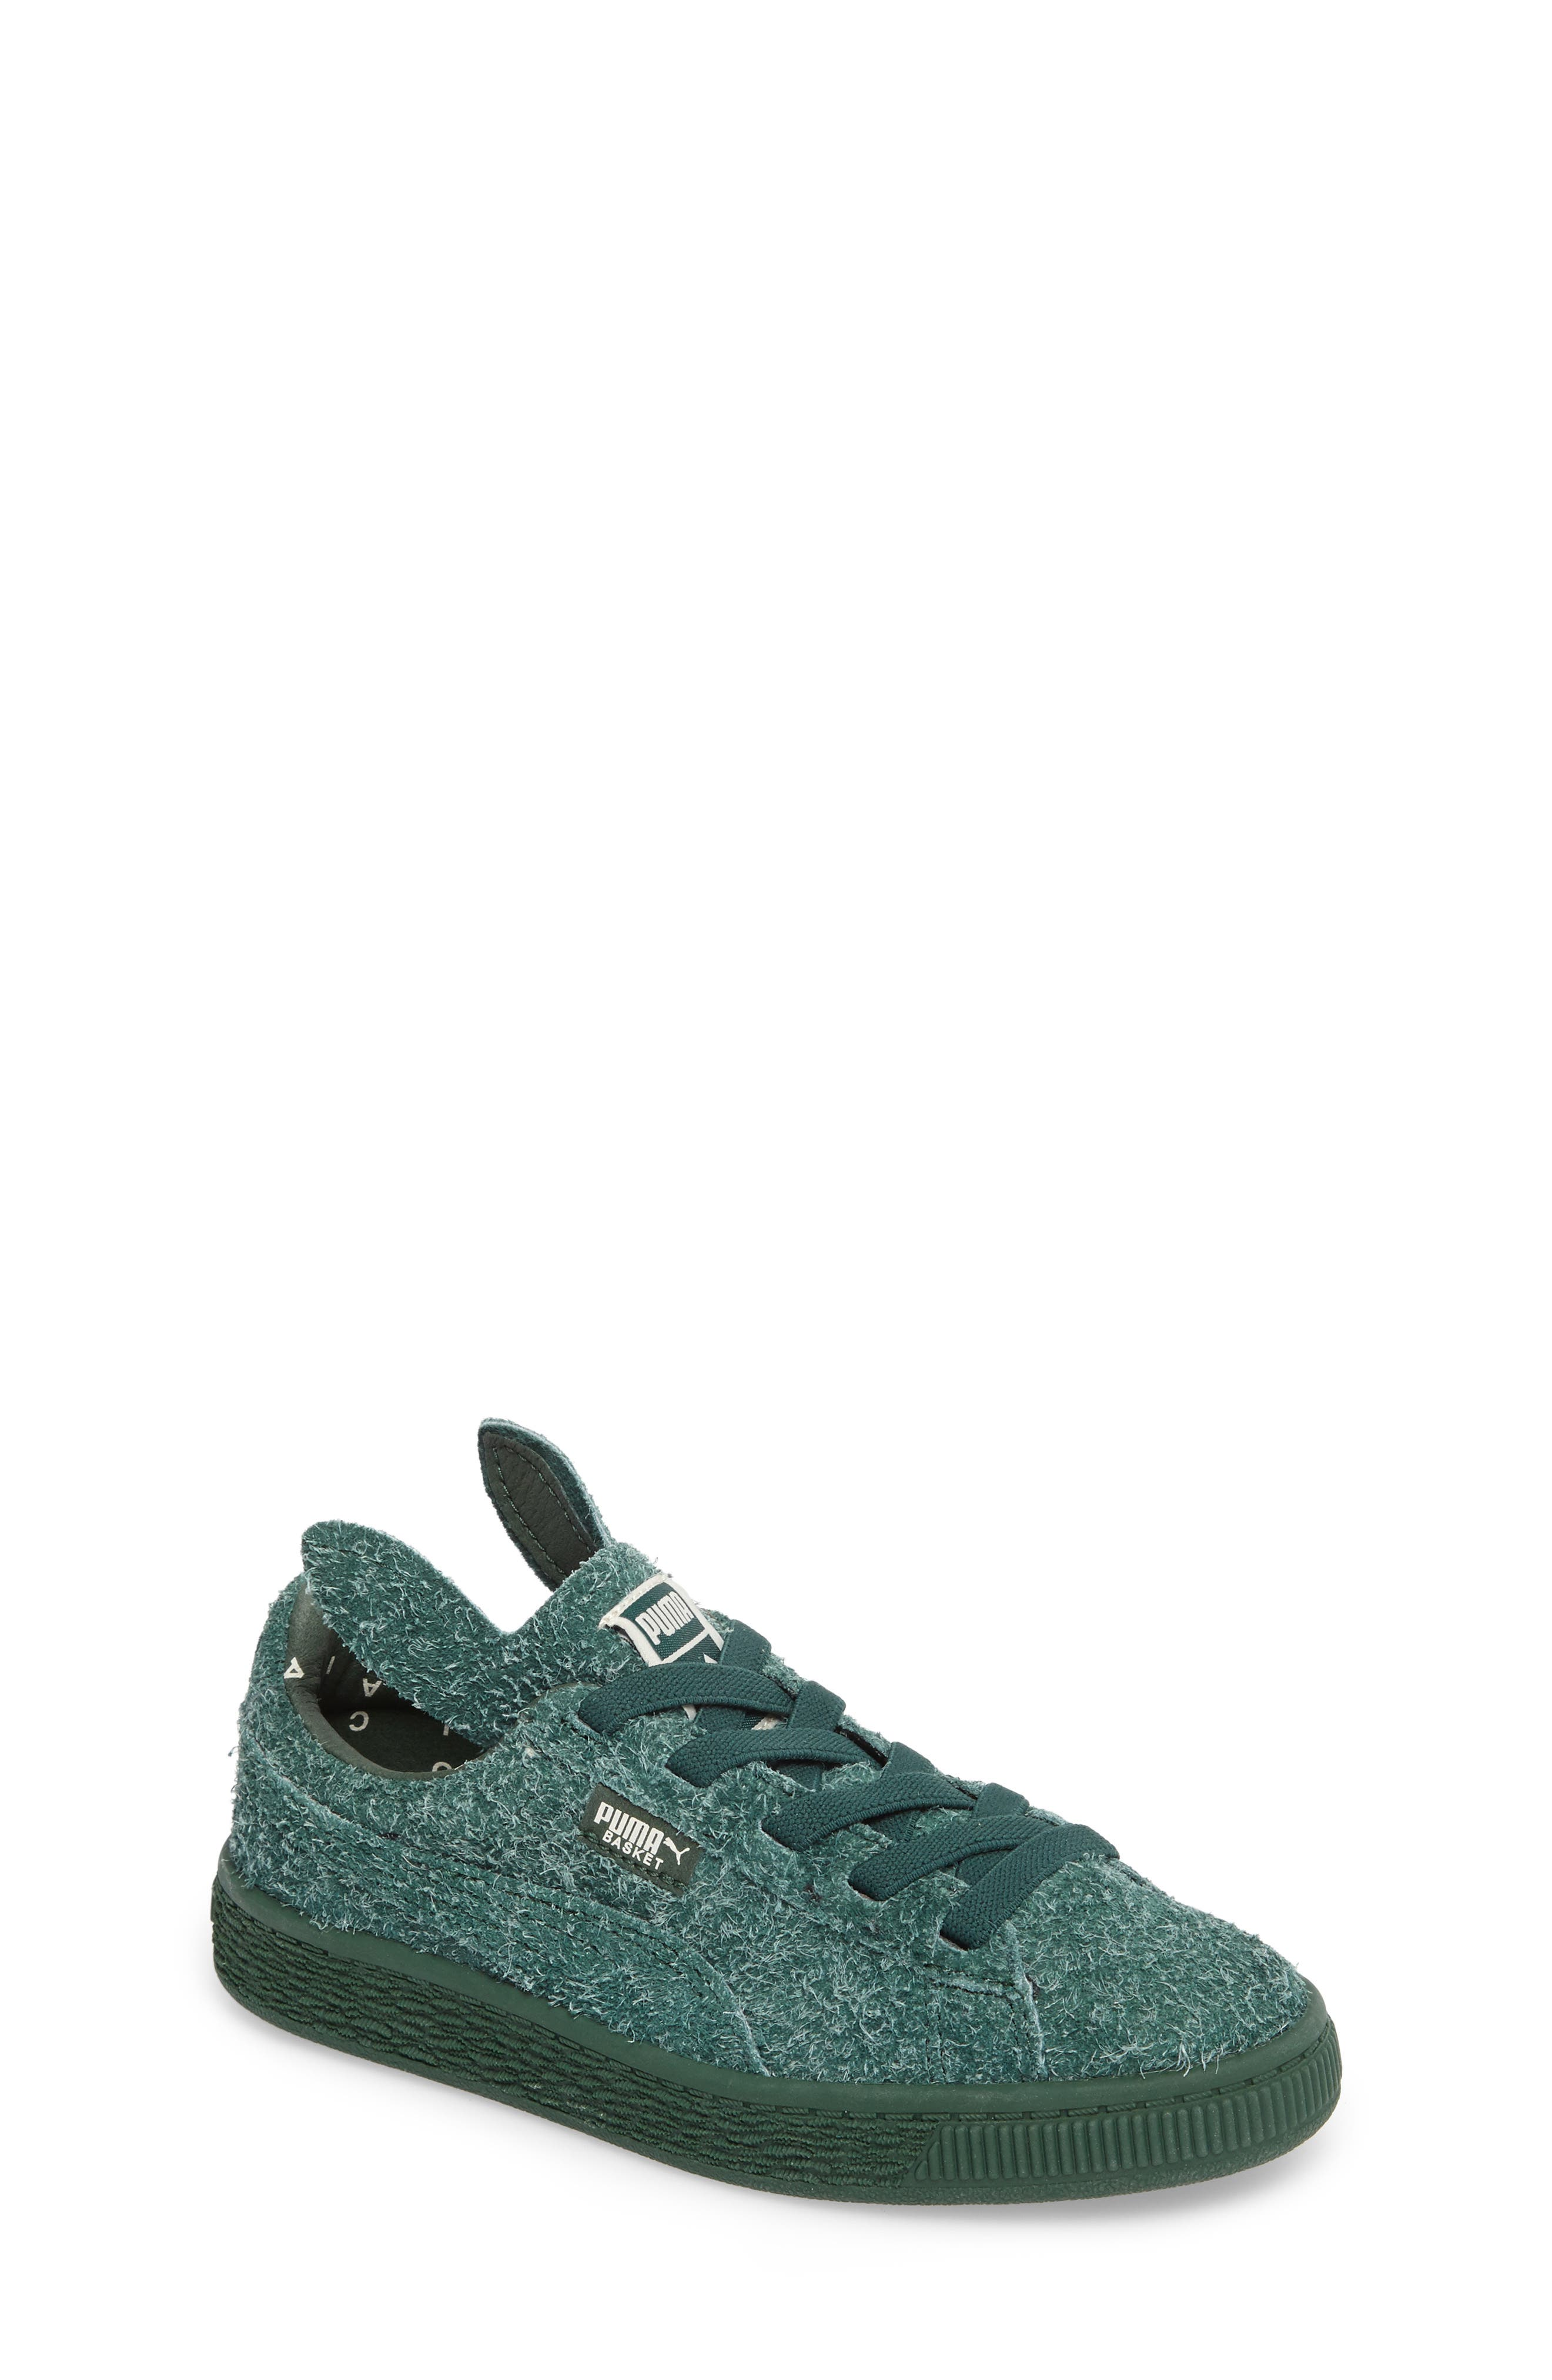 Alternate Image 1 Selected - PUMA x tinycottons Basket Furry Sneaker (Baby, Walker, Toddler, Little Kid & Big Kid)